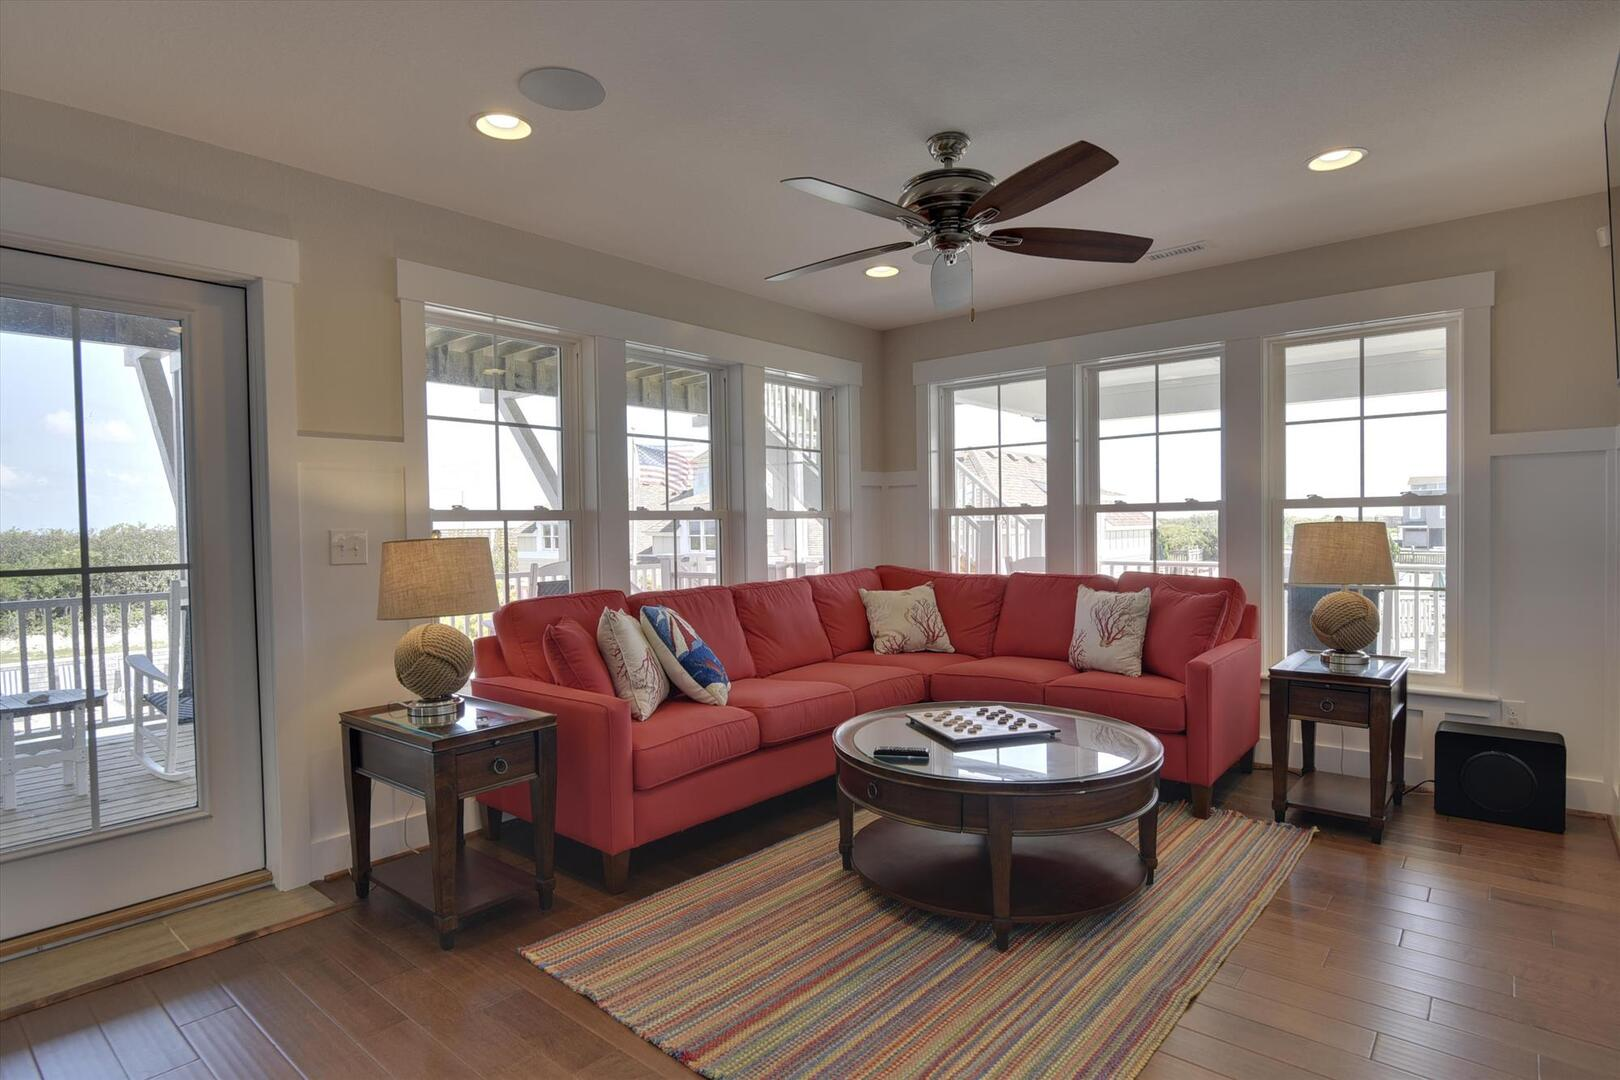 Middle/Entry Level,Sitting Room,